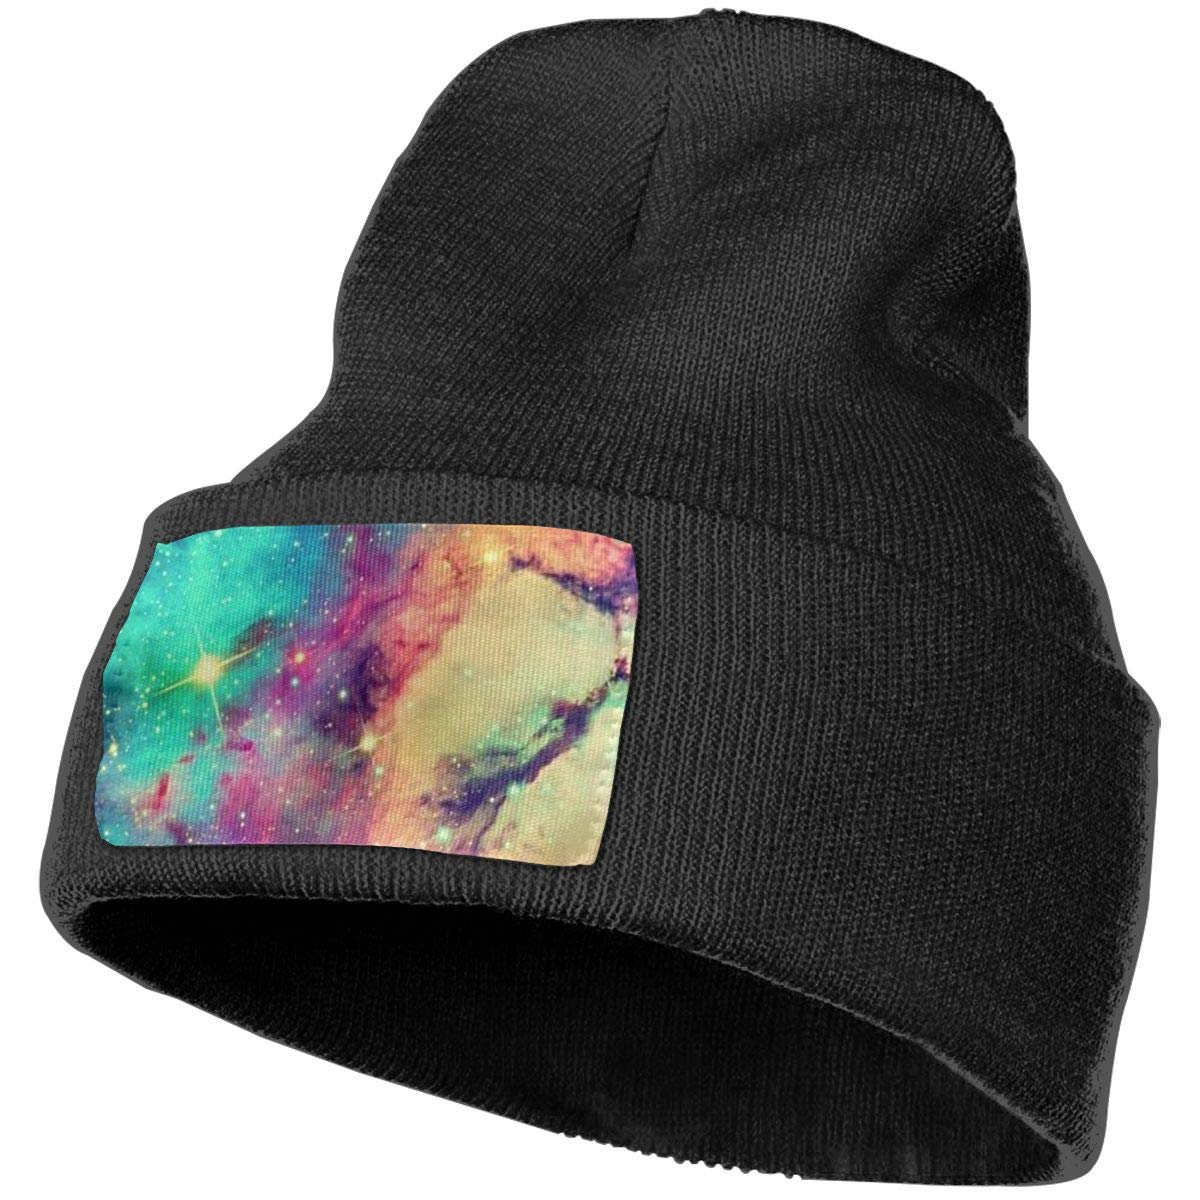 100/% Acrylic Acid Mas Beanie Hat Ruin Starry Sky Fashion Knitting Hat for Men Women